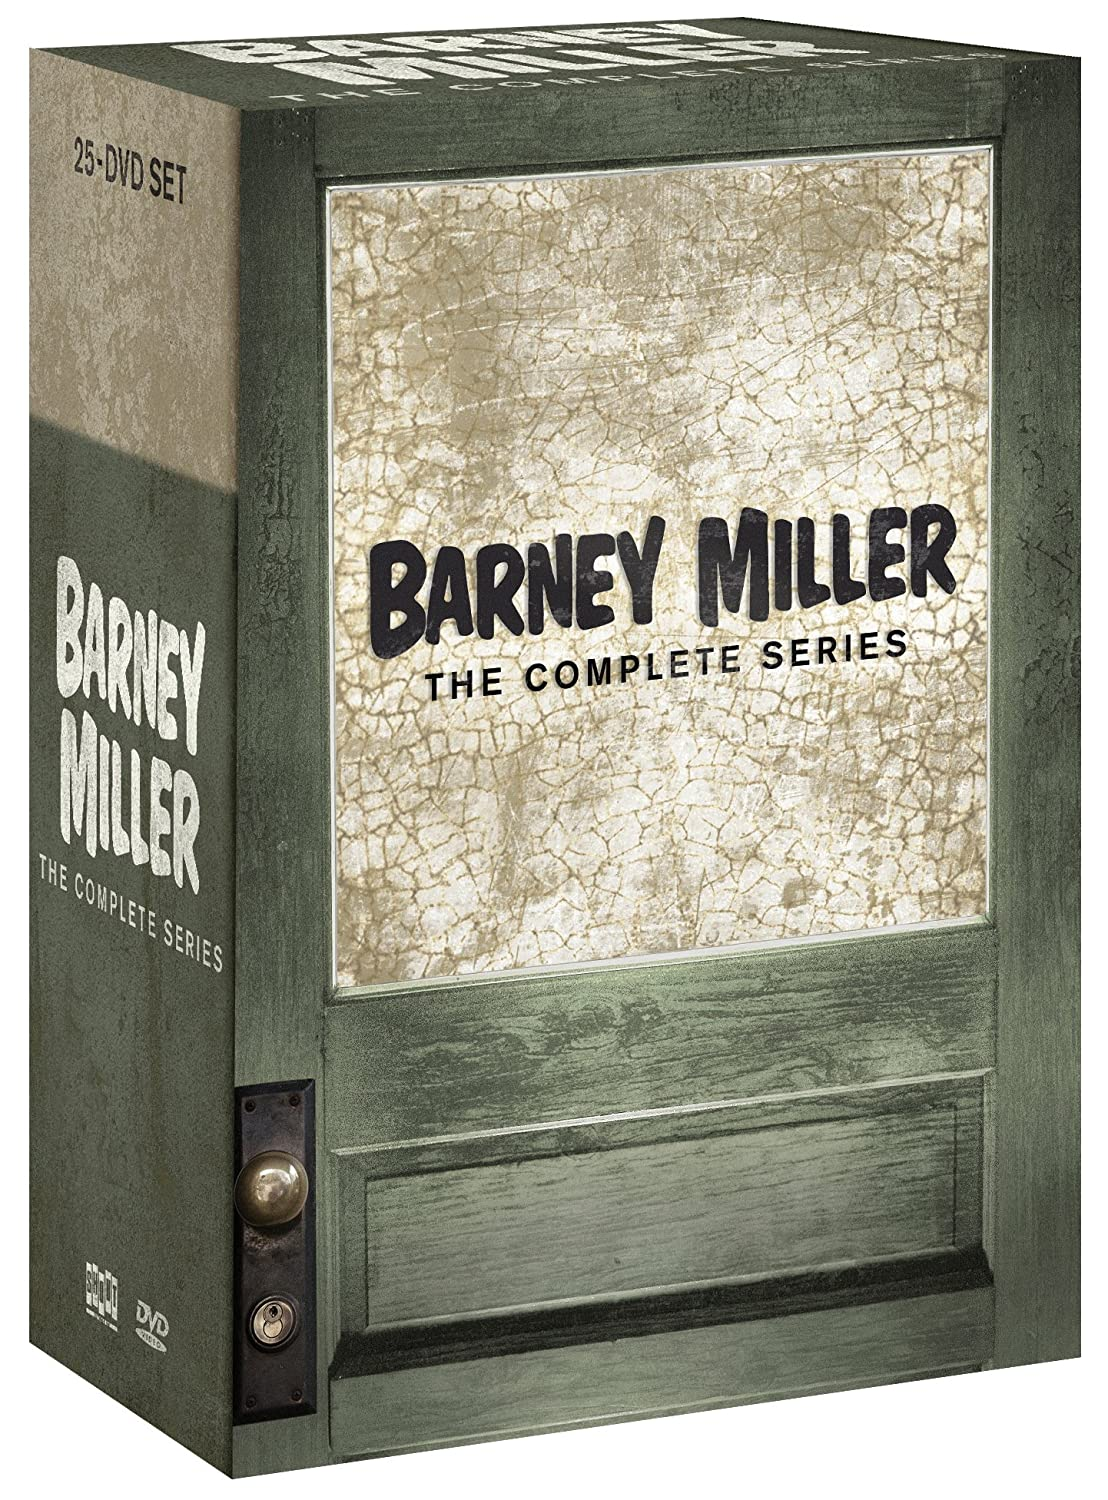 Barney Miller: The Complete Series $58.99